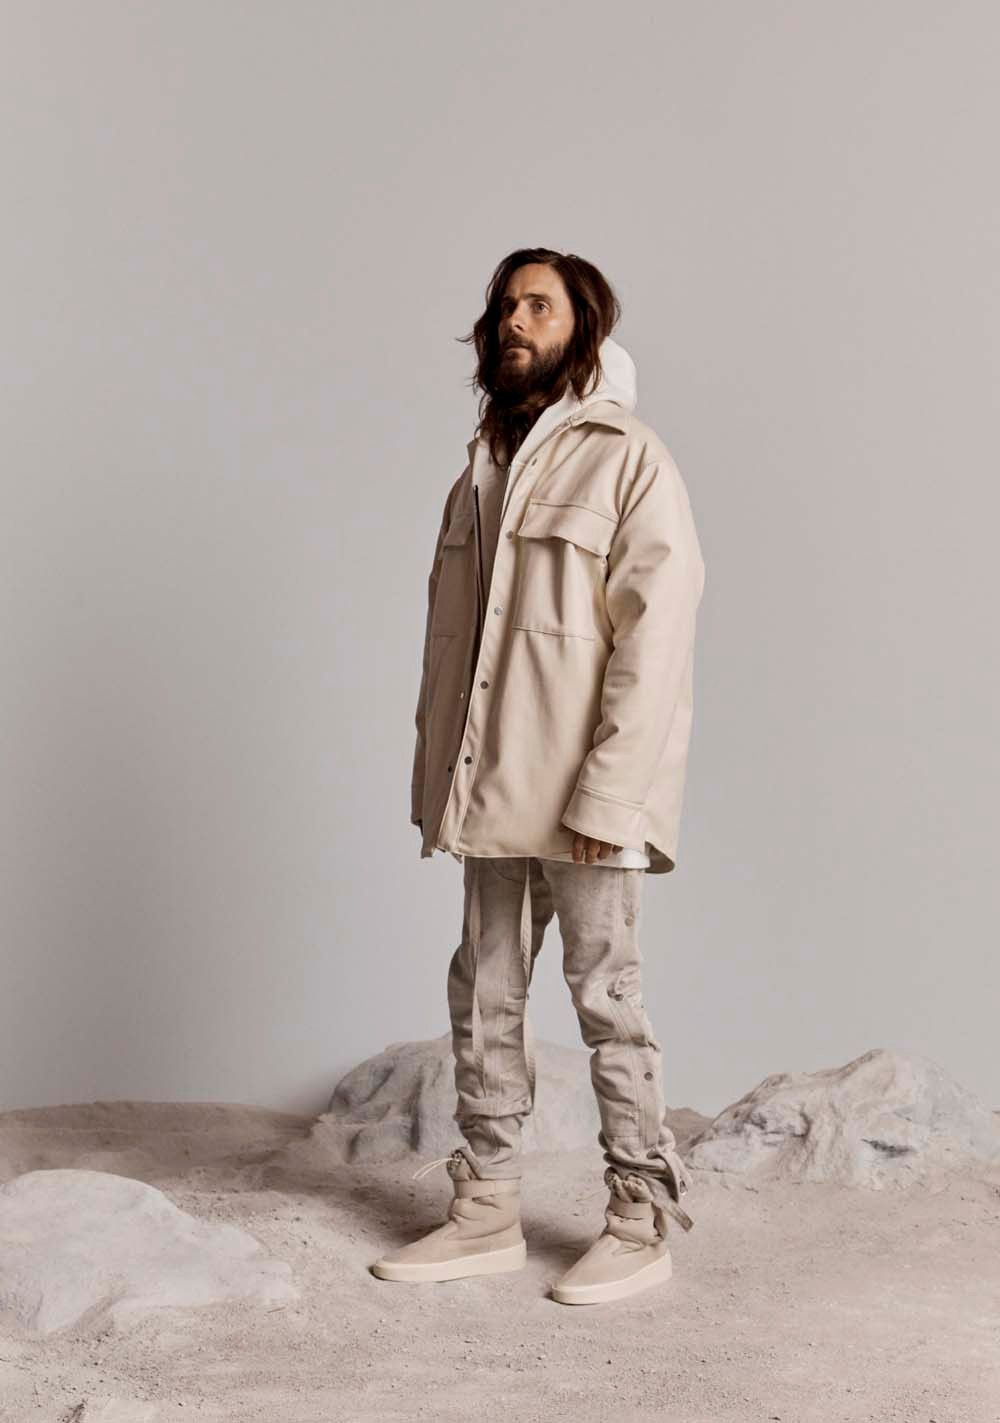 f15c2250 Fear of God fall winter 2018 lookbook collection nike collaboration drop  september 5 6 2018 release date movie film video